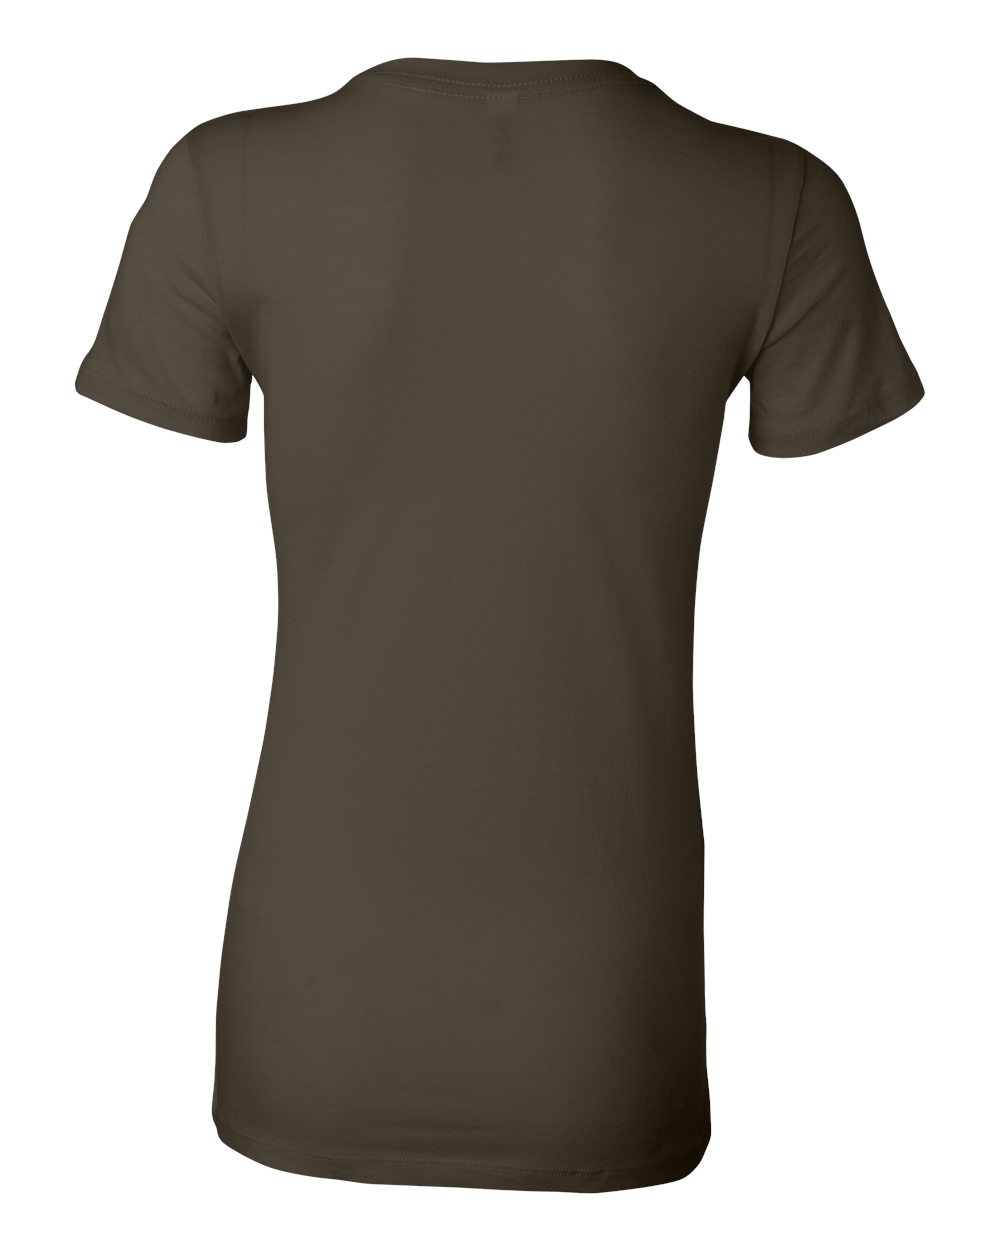 Bella-Canvas-Womens-The-Favorite-T-Shirt-6004-Size-S-2XL thumbnail 10